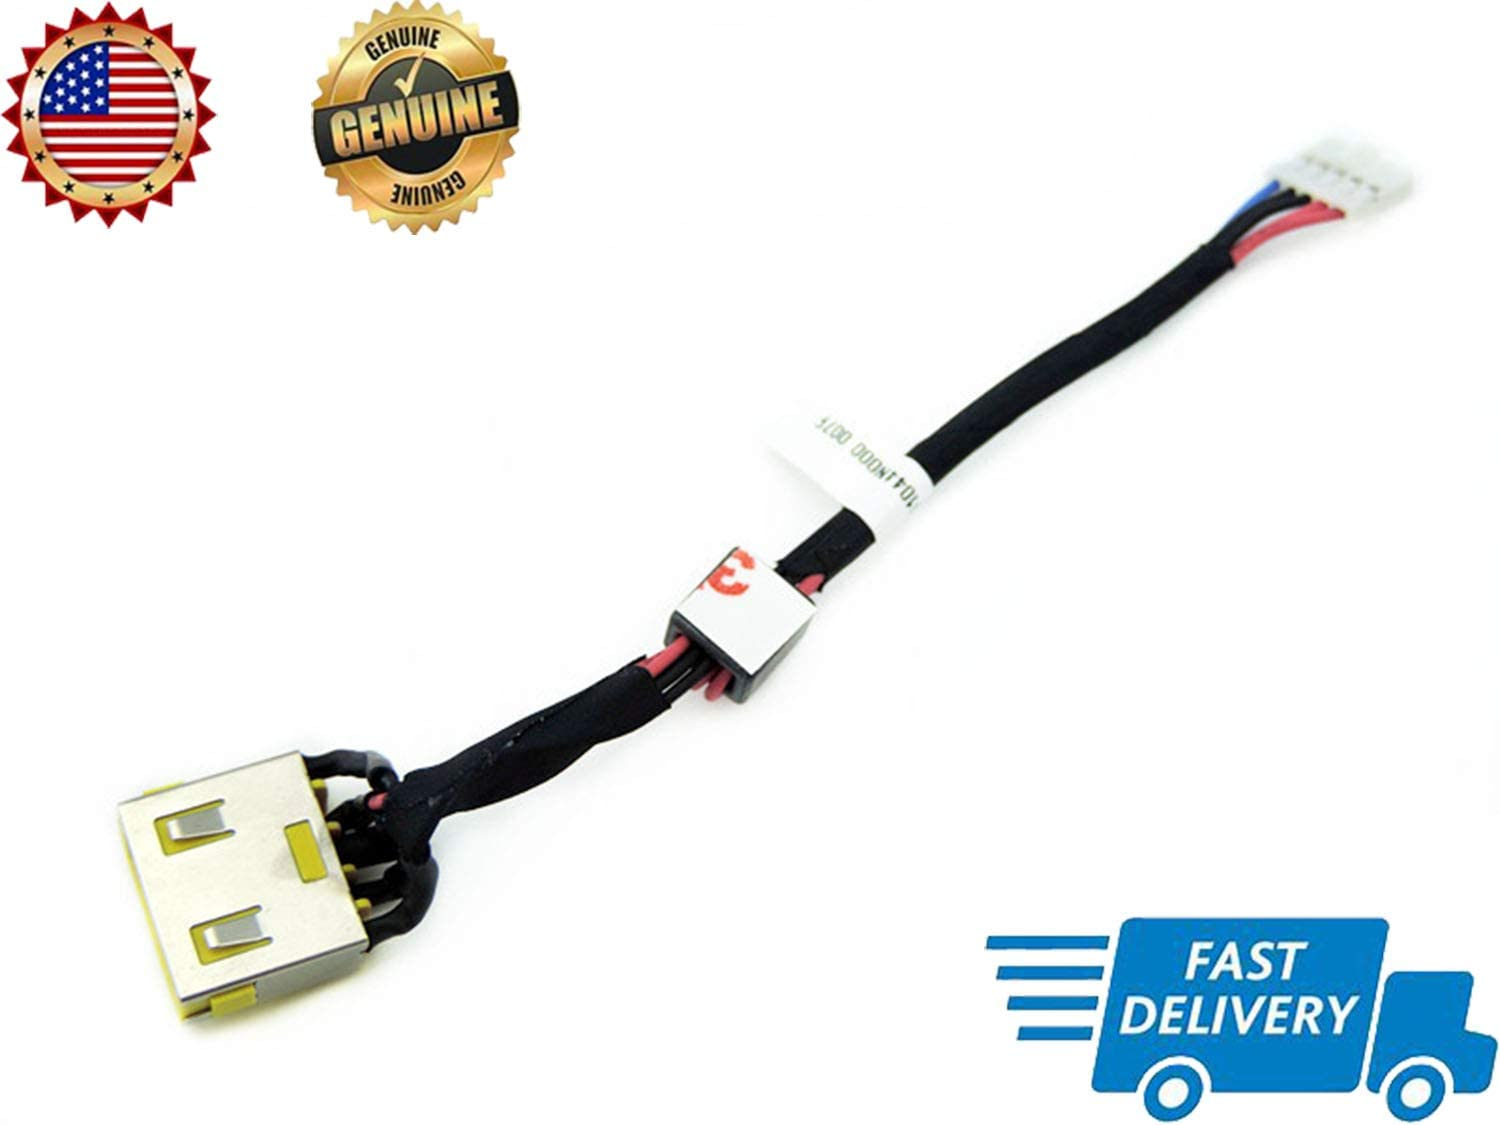 Lenovo Ideapad Y700-15ACZ Y700-15ISK DC30100PM00 DC30100PD00 DC Power Jack Cable